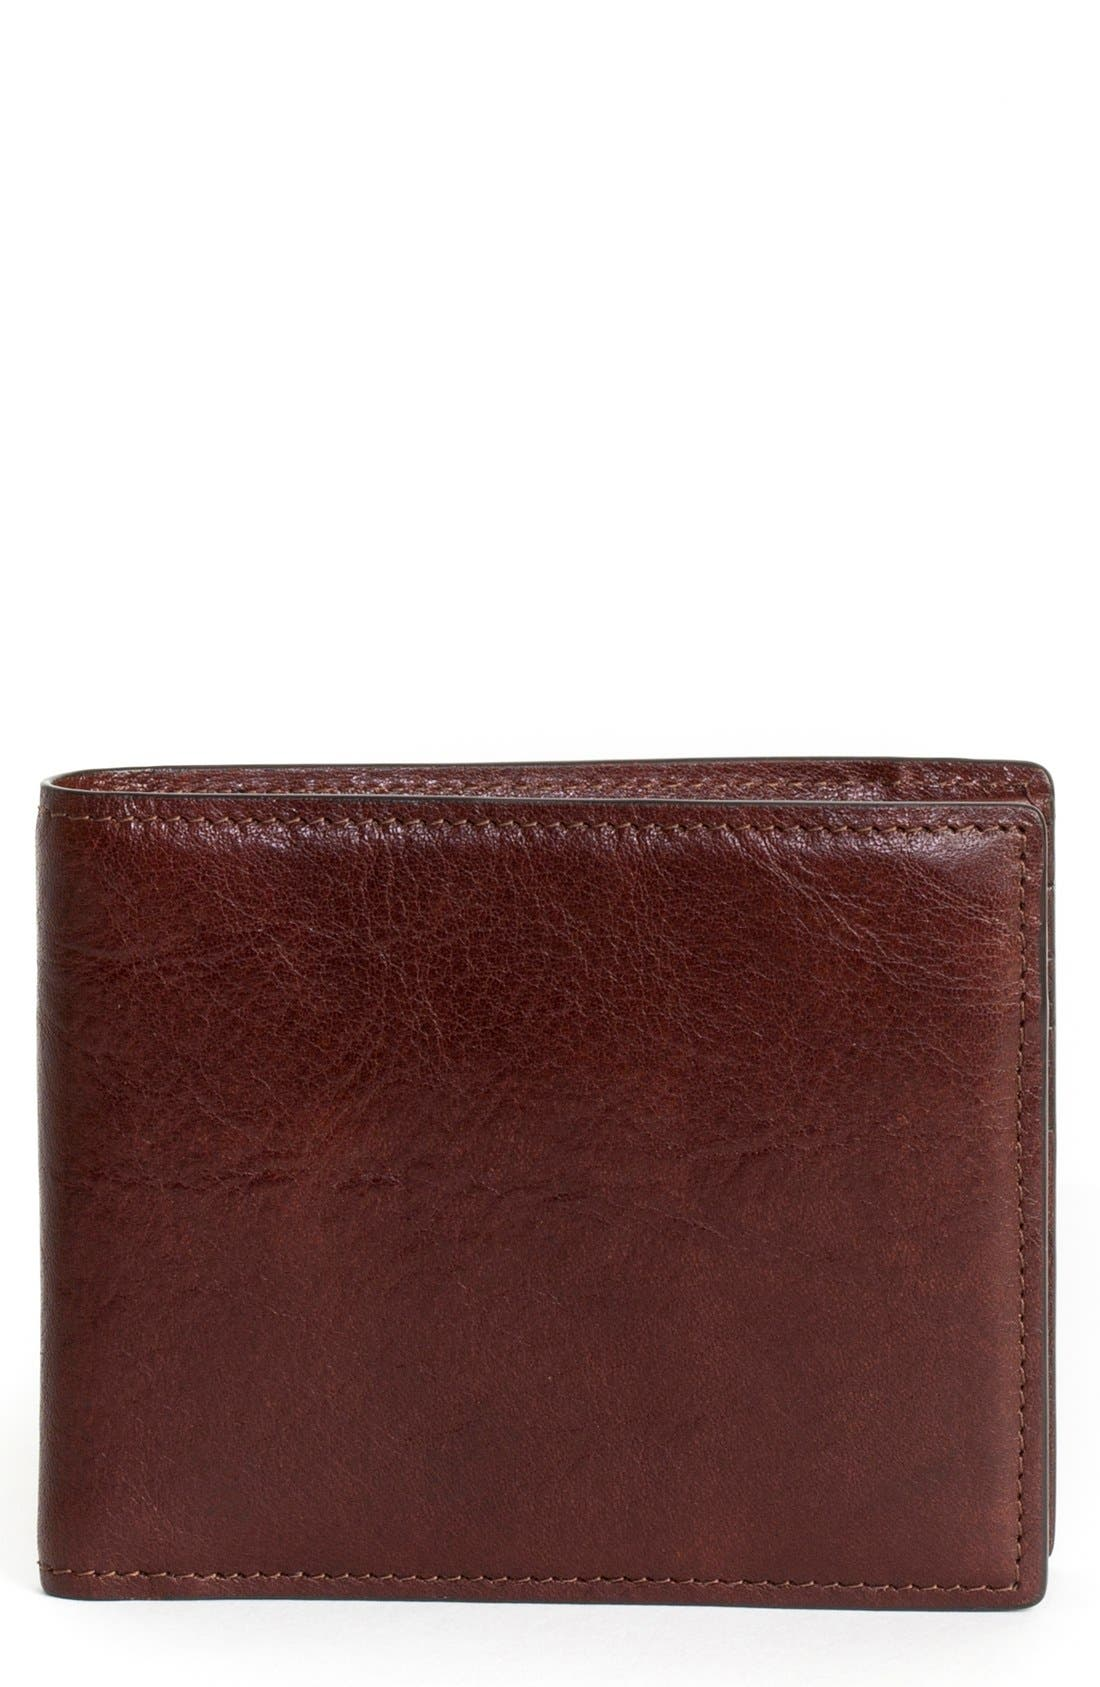 'Becker' Leather Wallet,                             Main thumbnail 1, color,                             215